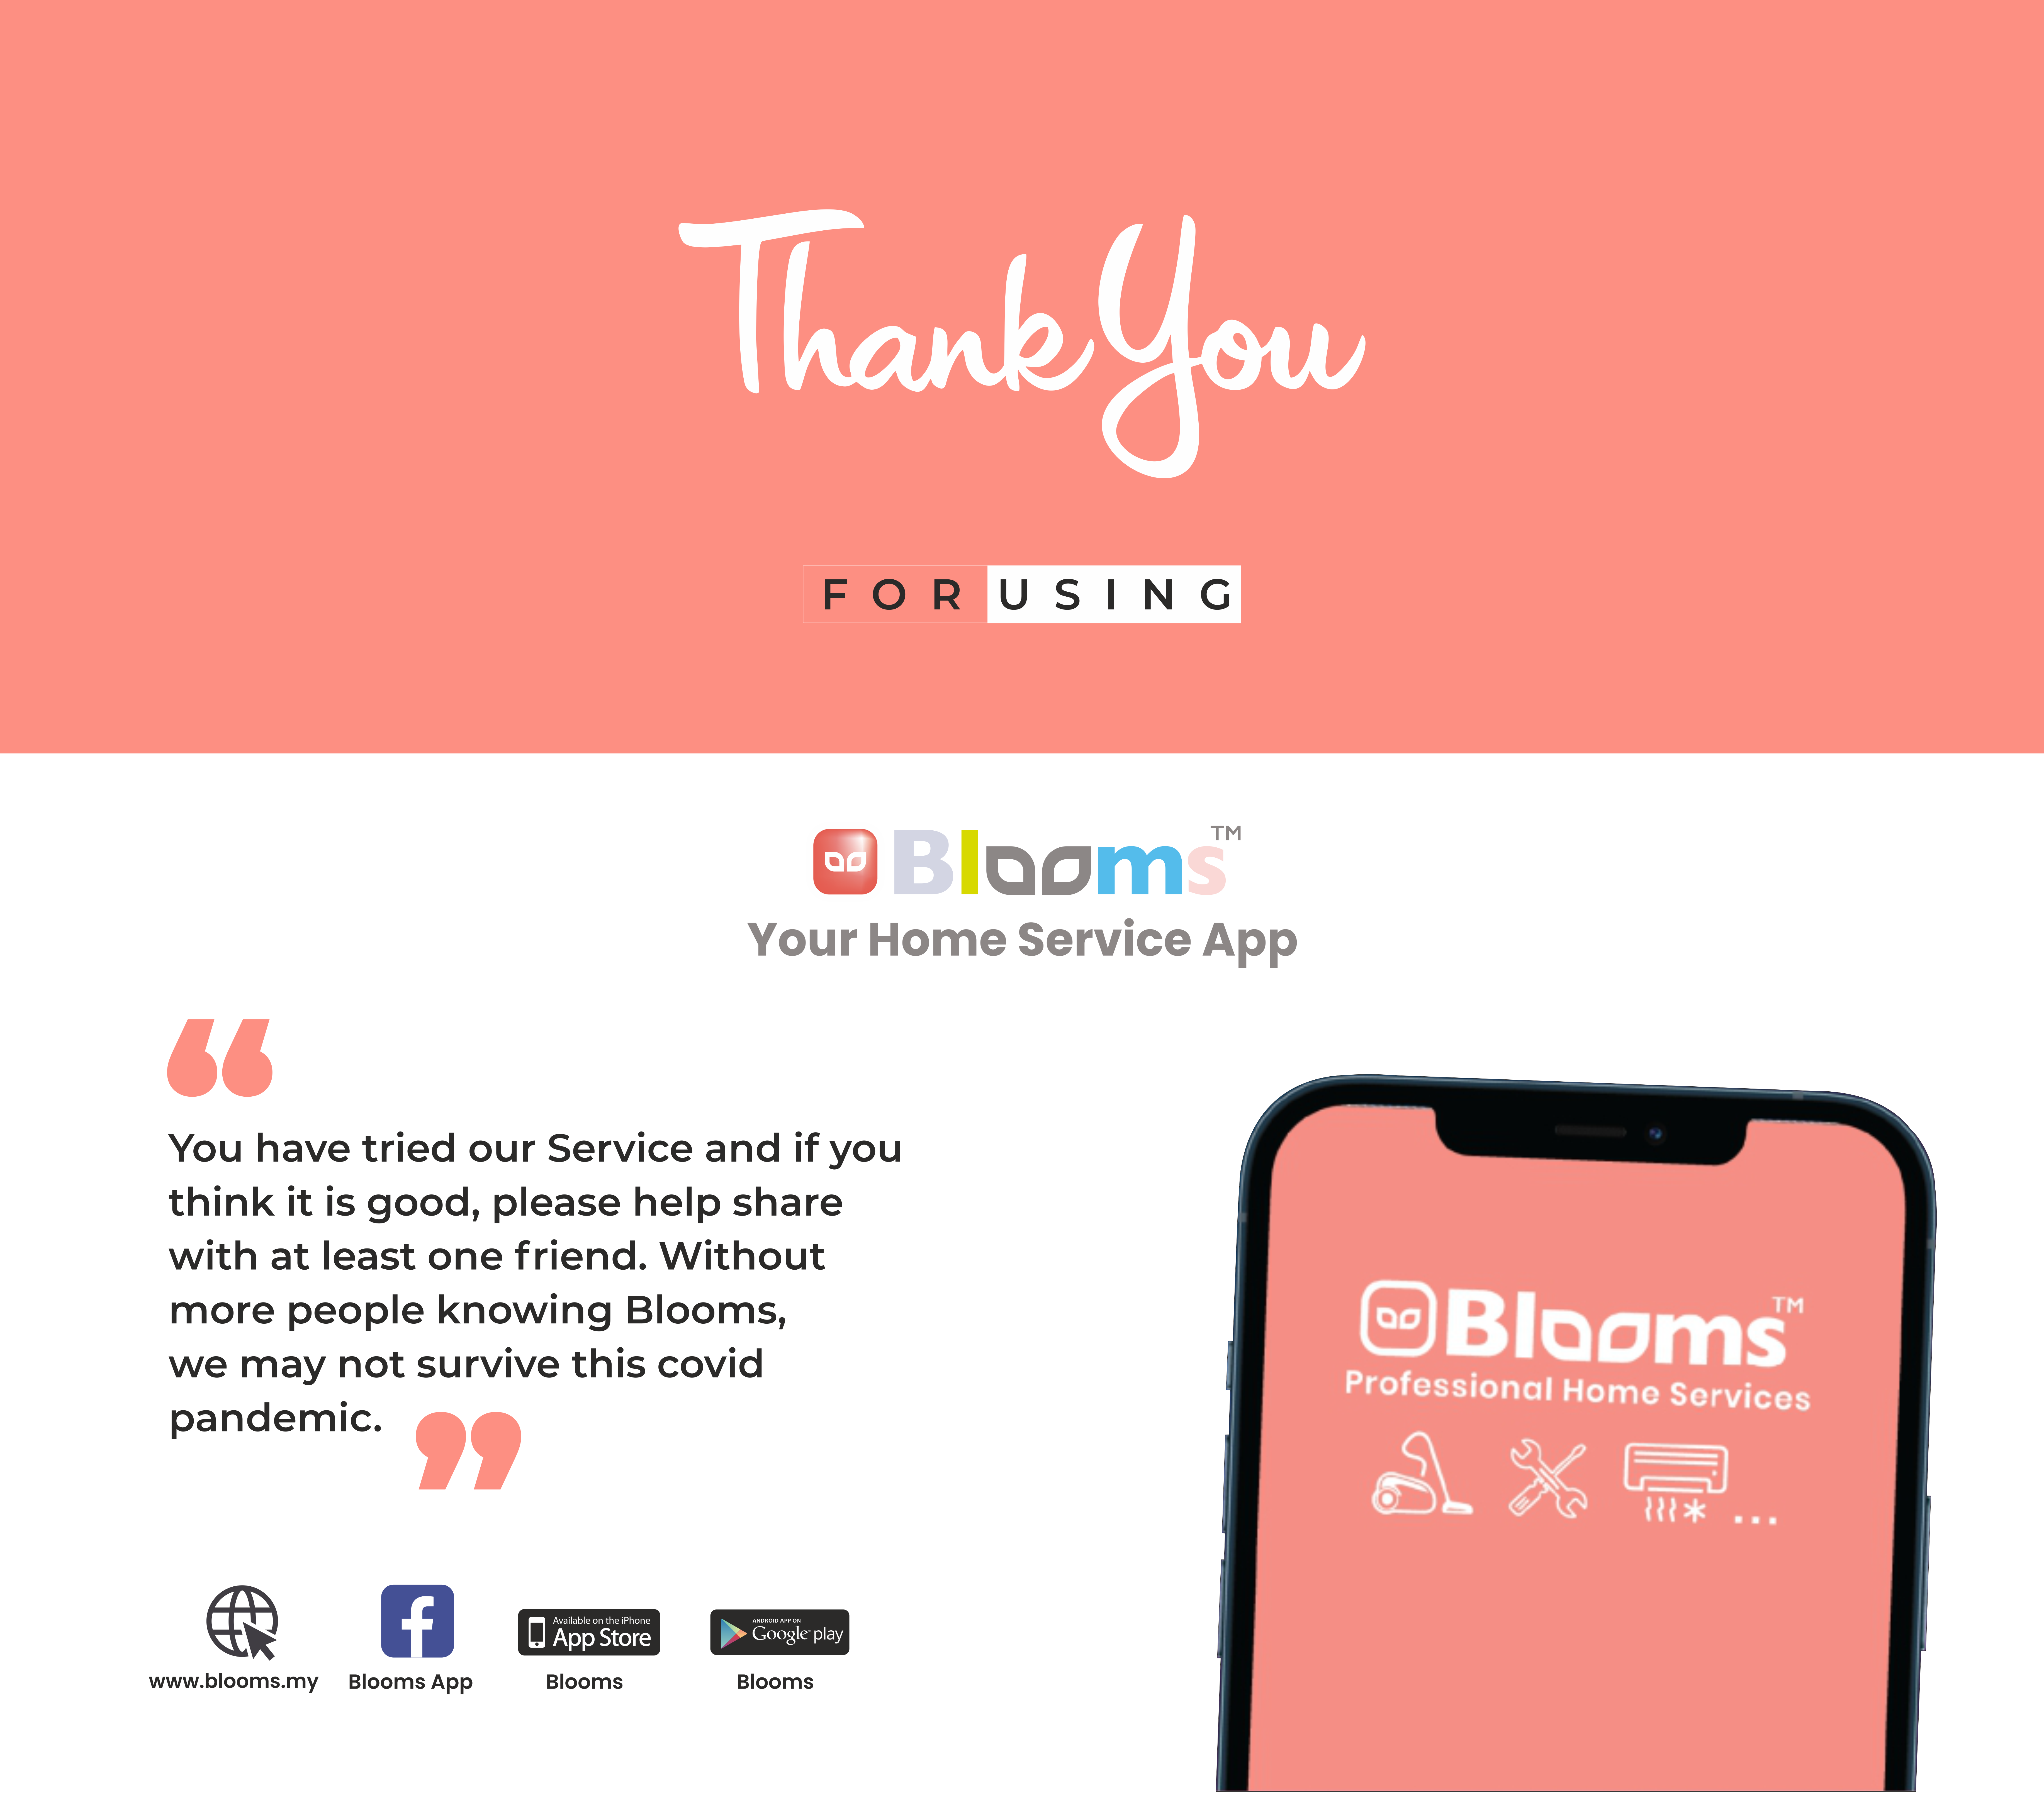 Blooms Services Sharing 5